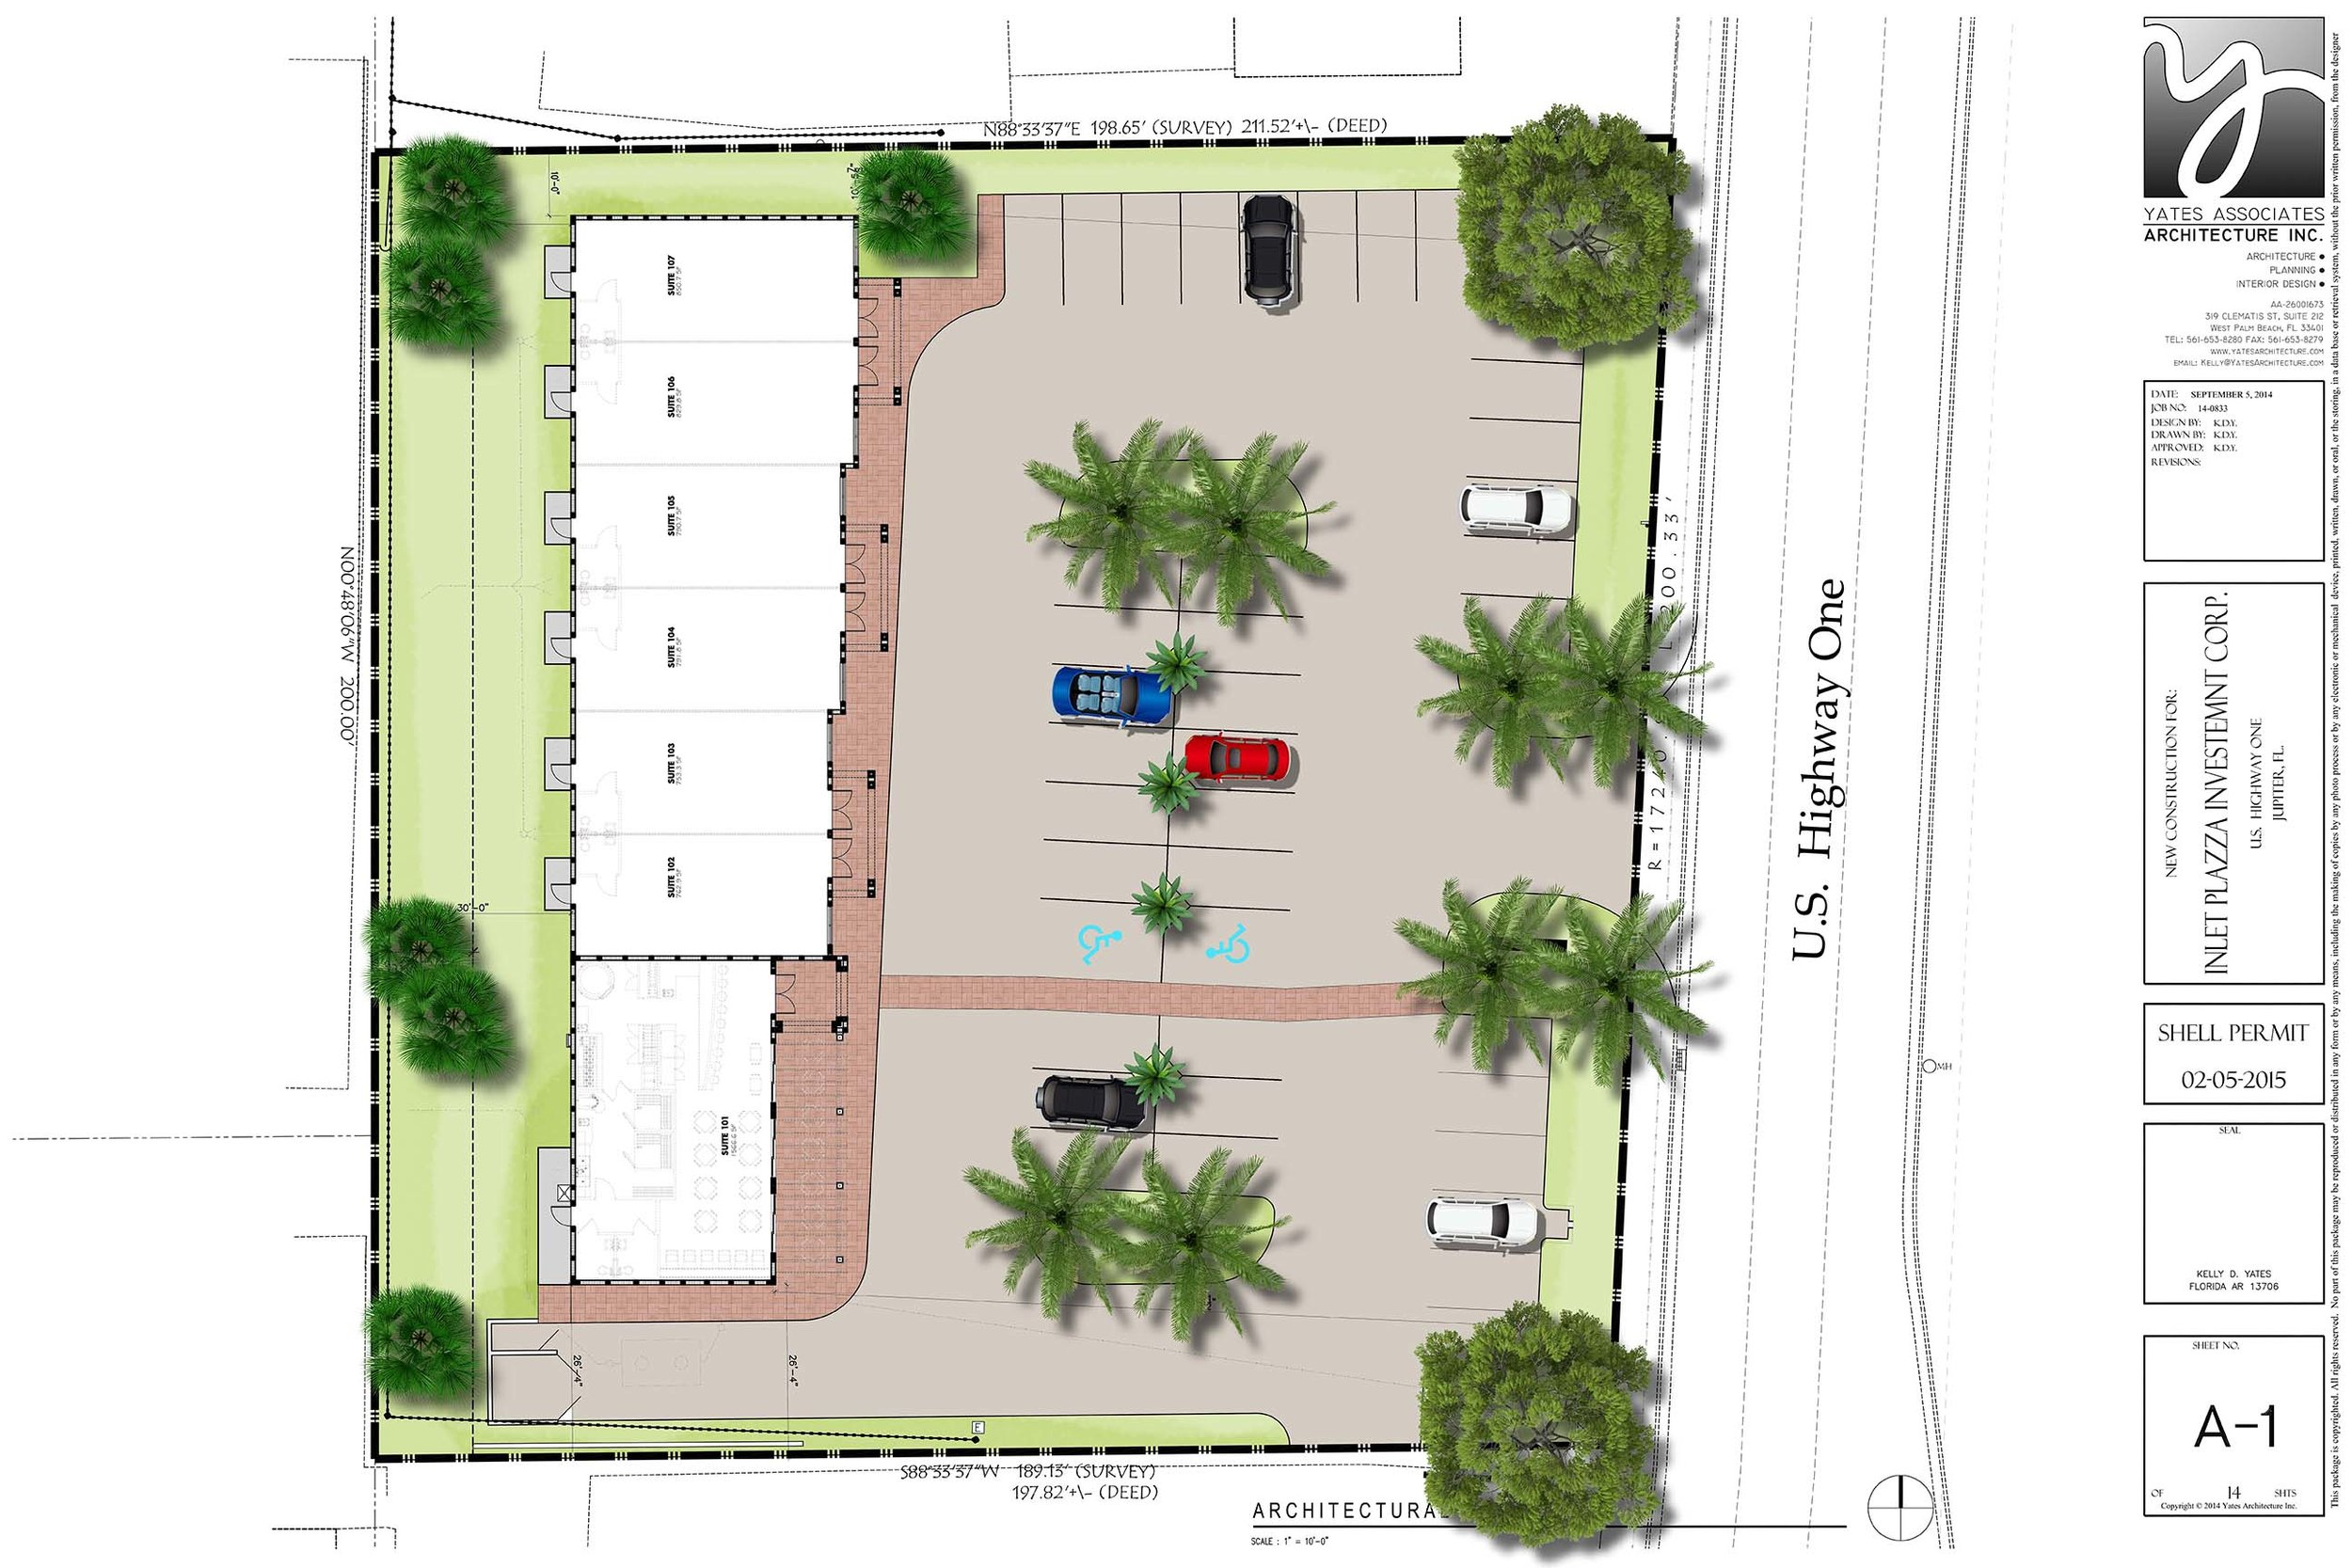 Inlet Plaza Site Plan